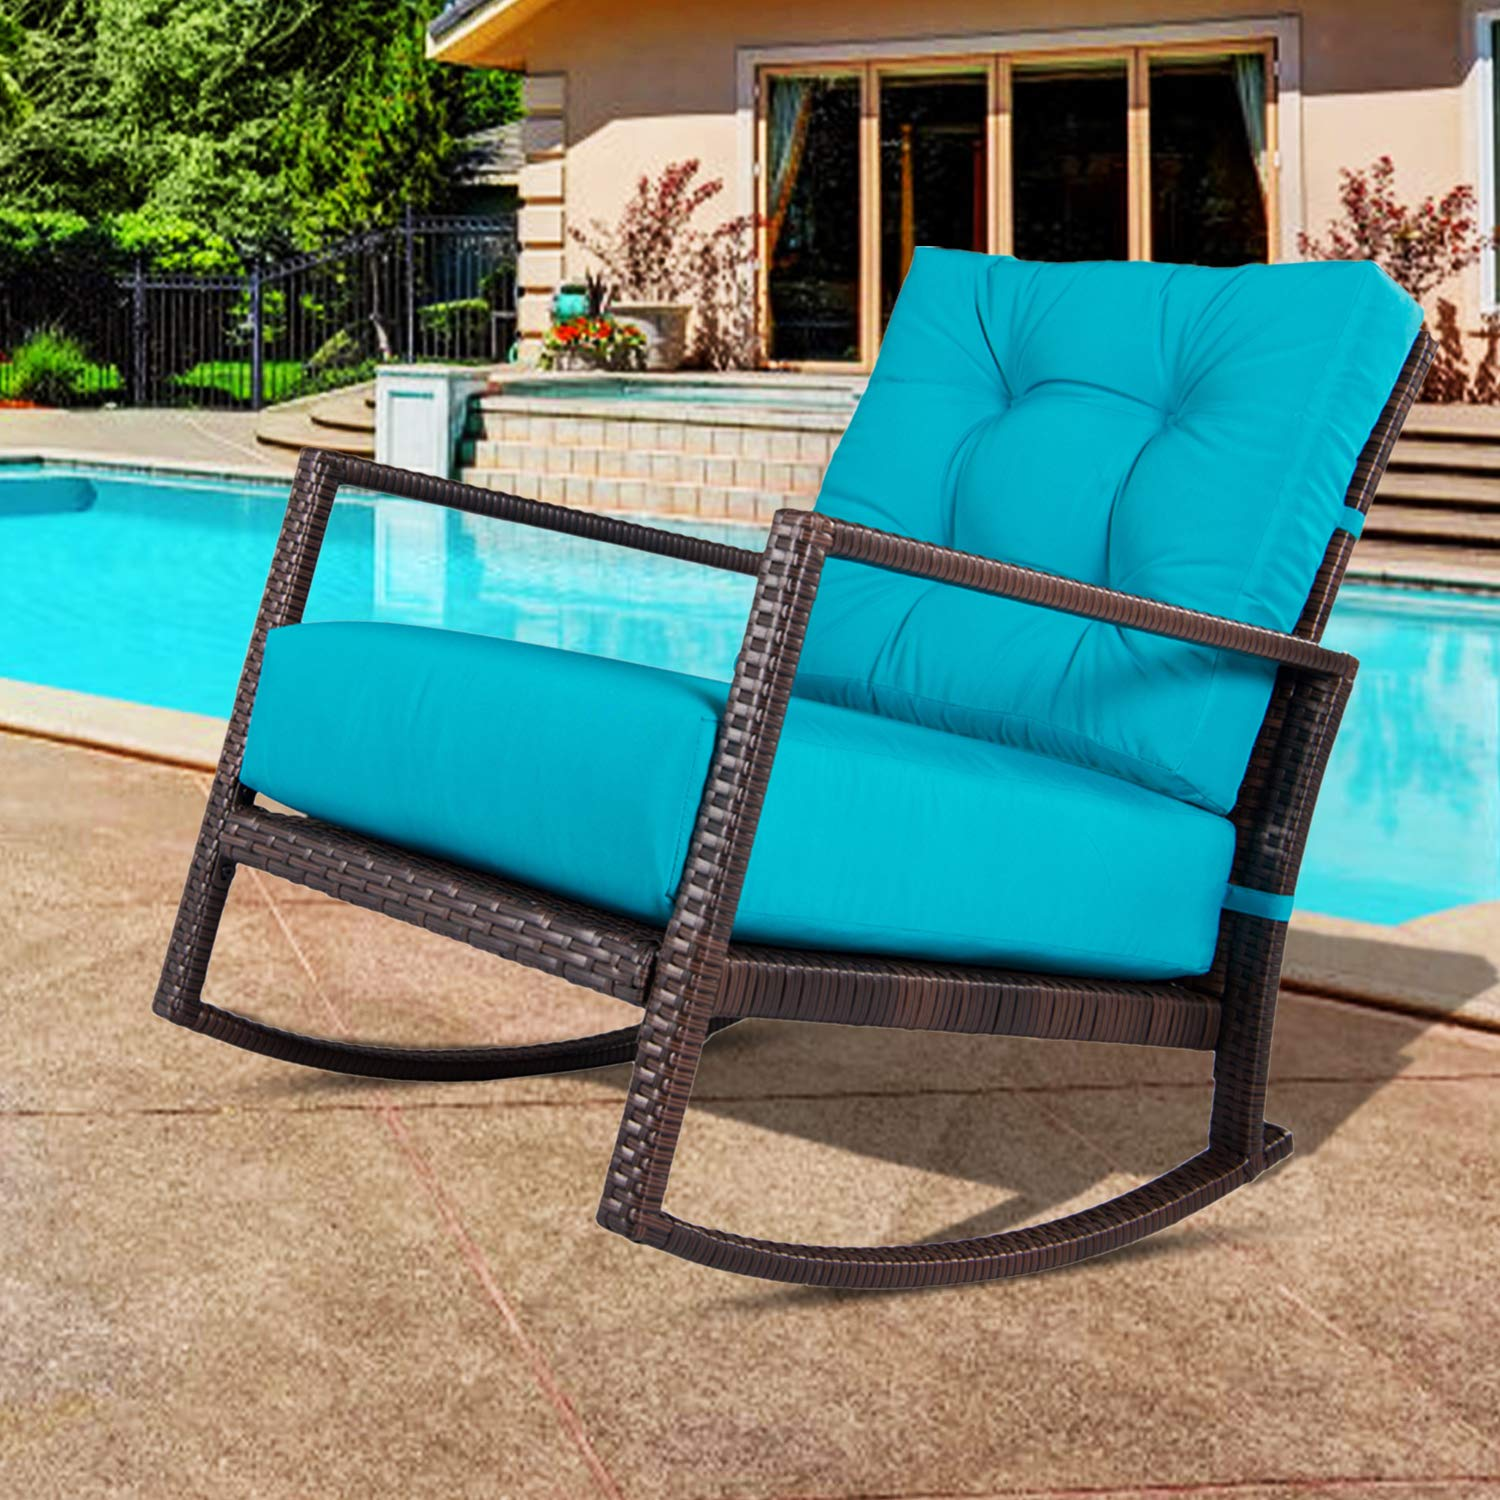 Outroad Rocking Wicker Chair Blue Lounge Chair with Thick Cushion for Outdoor, Porch, Garden, Backyard or Pool by OUTROAD OUTDOOR CAMPING GARDEN PATIO